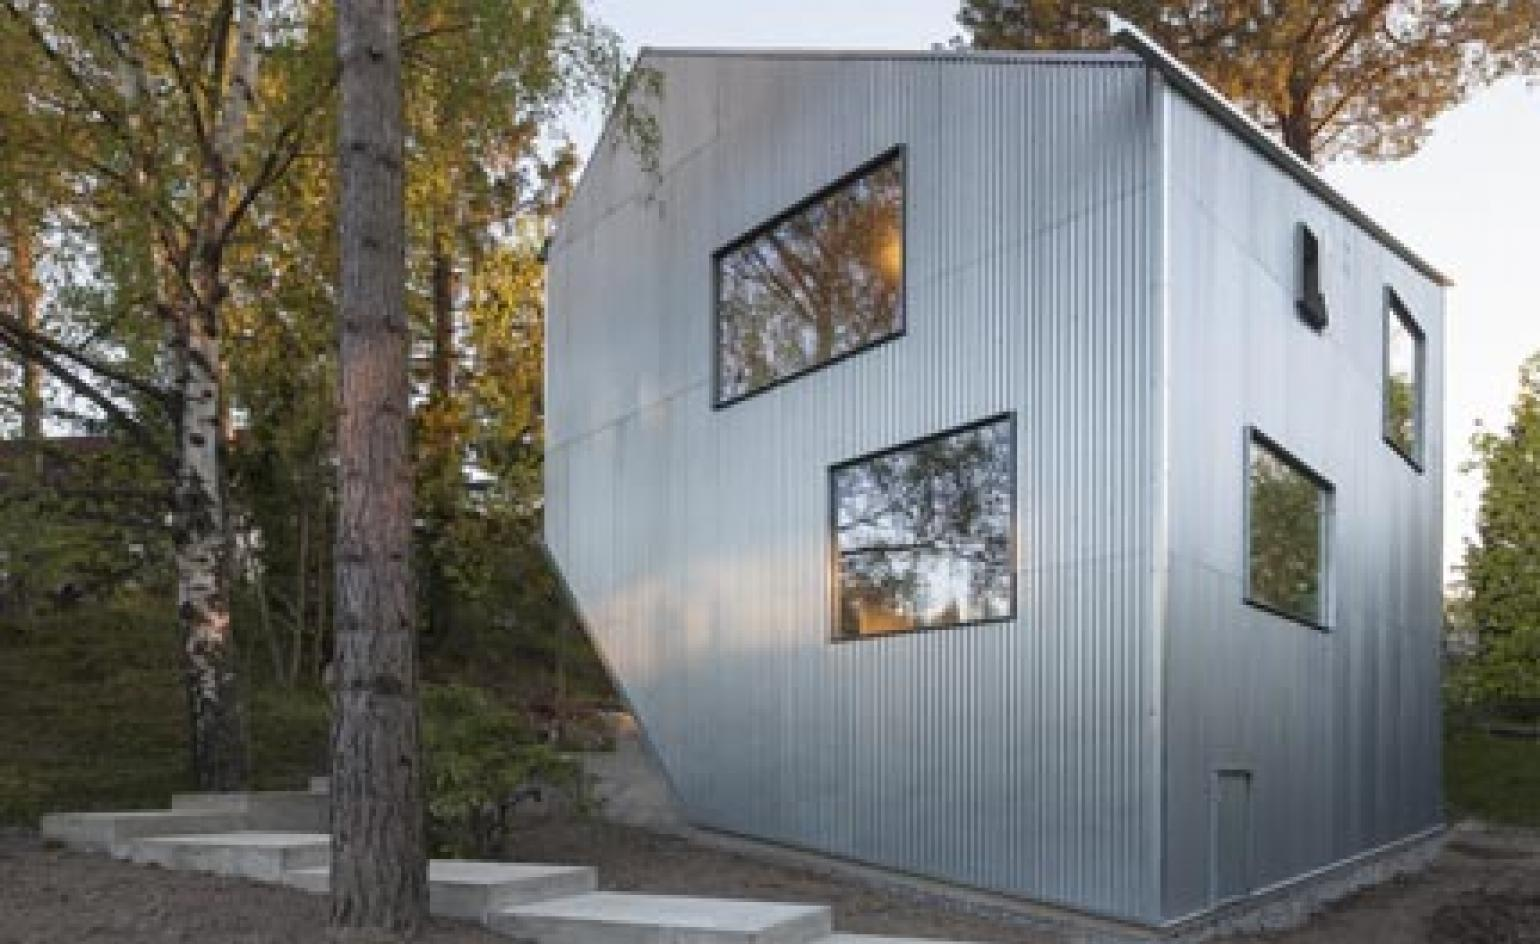 Happycheap House By Tommy Carlsson Offers A New Model For